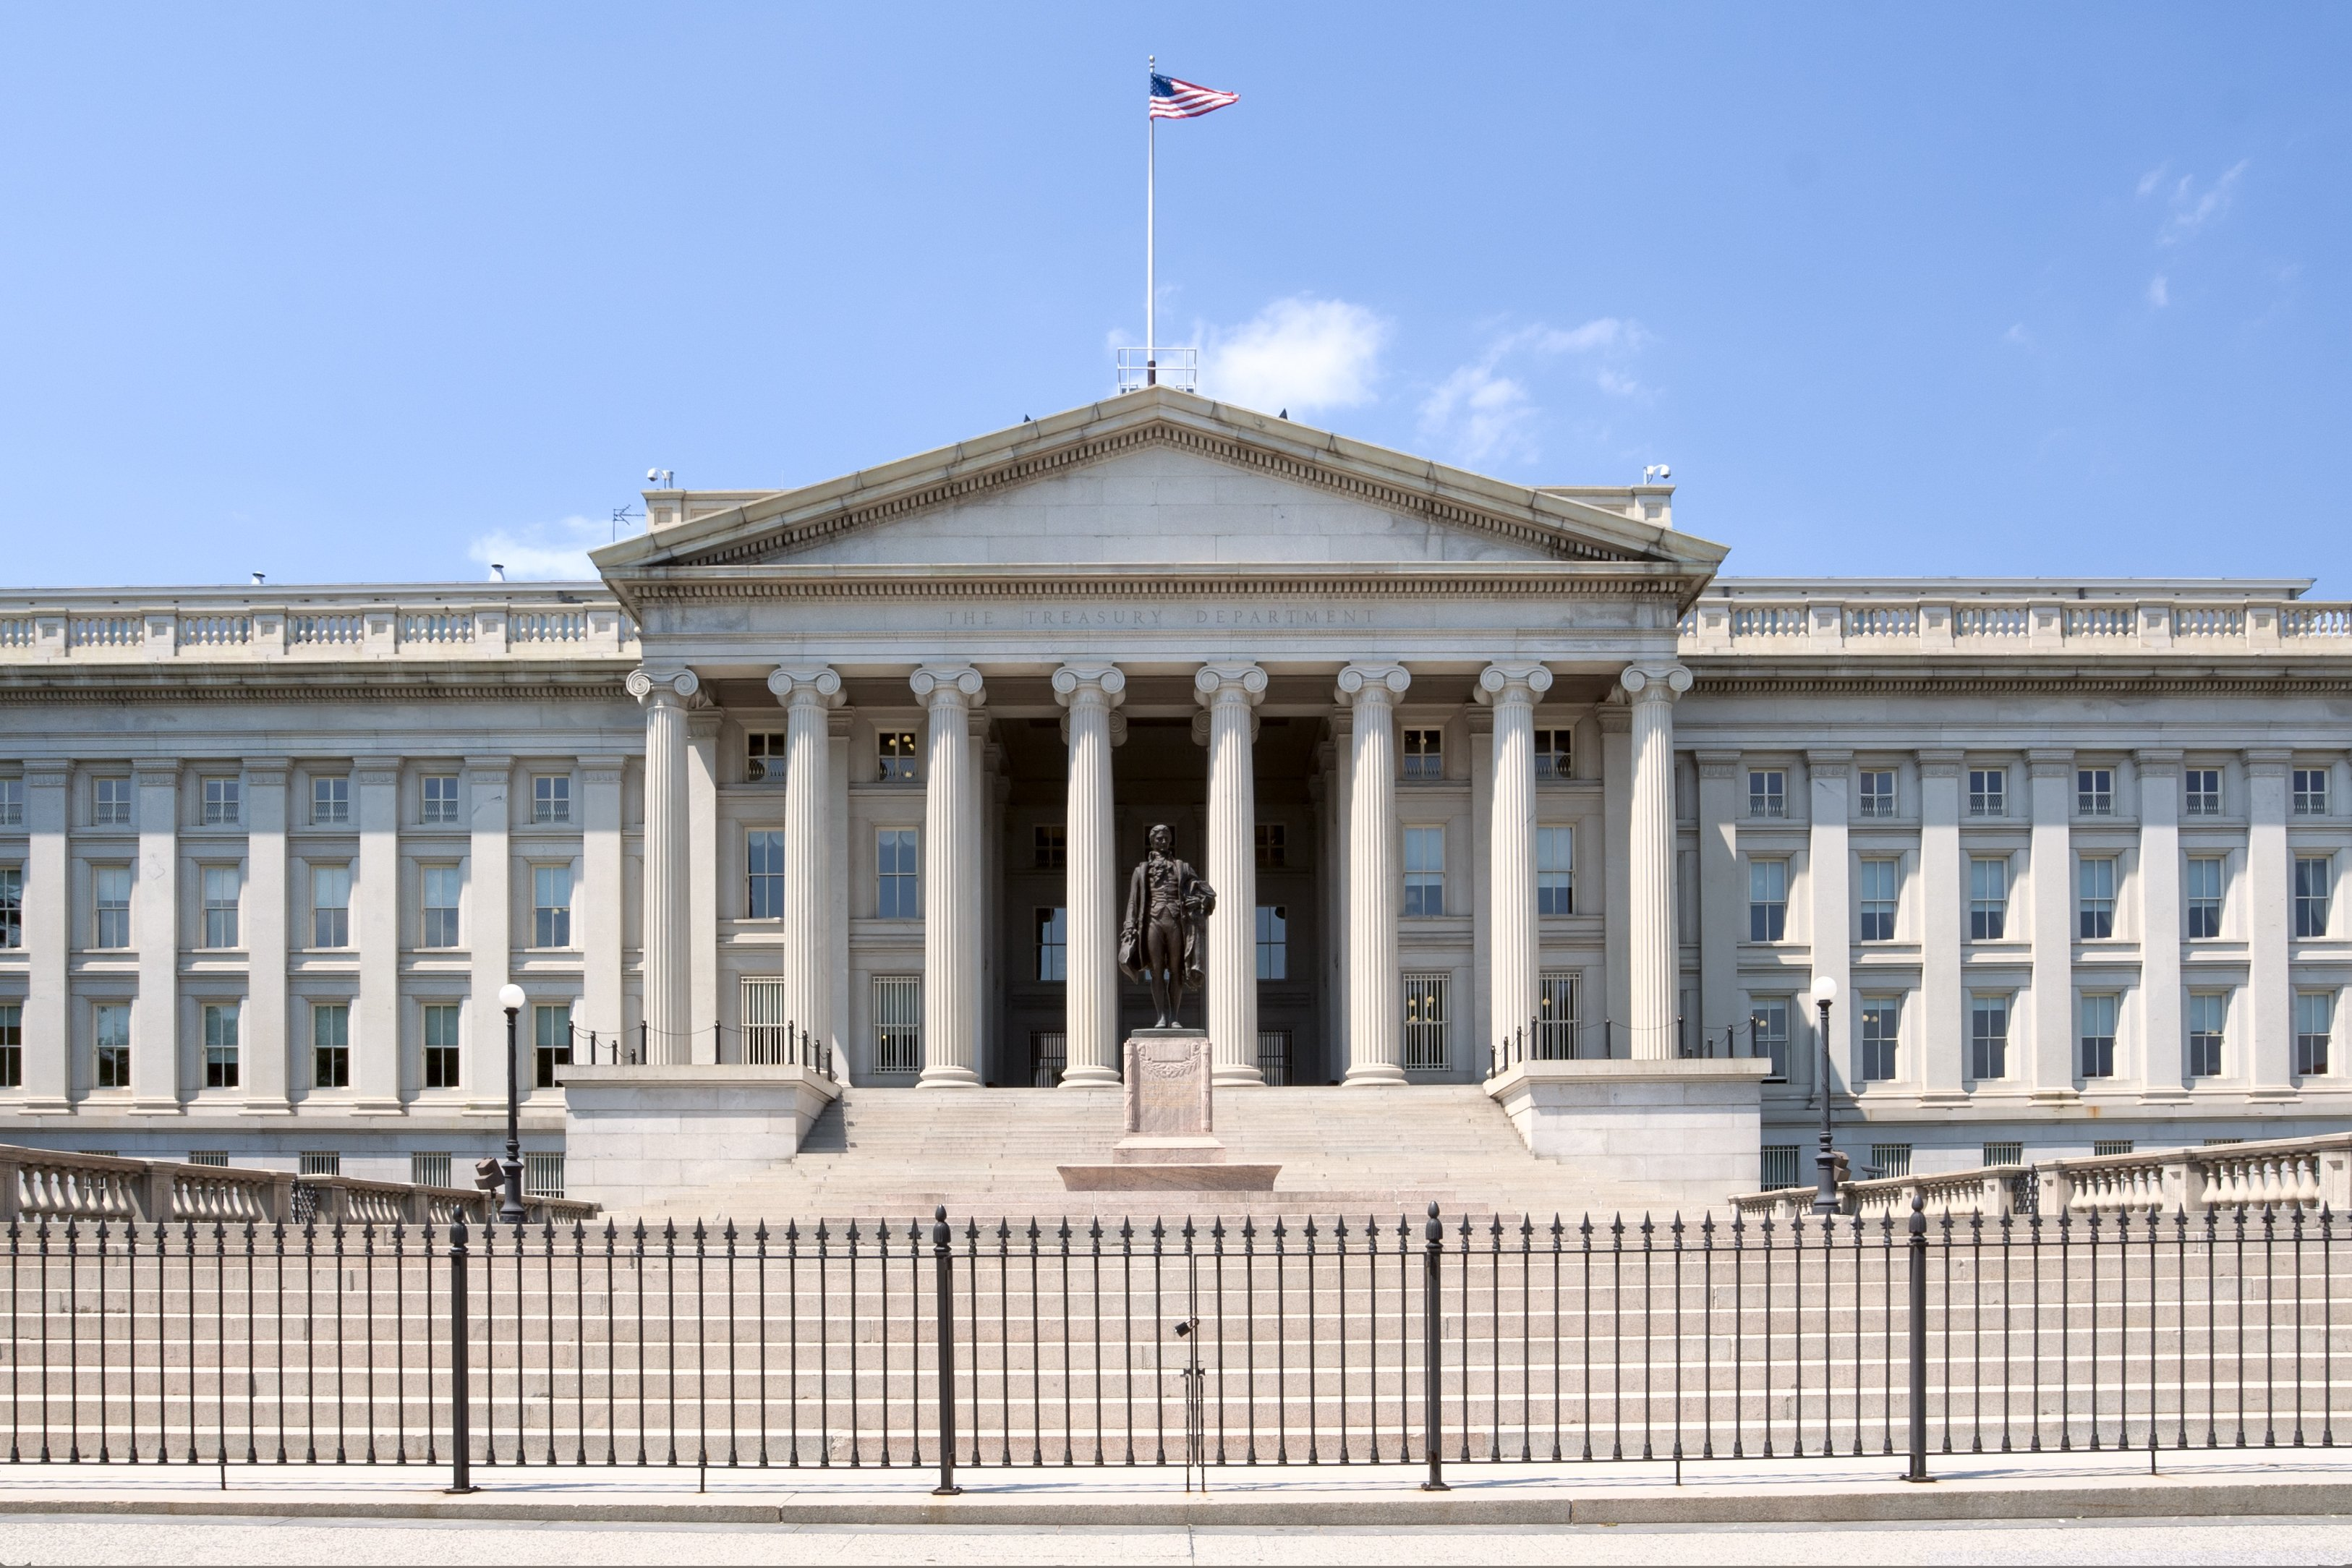 United States Department of the Treasury is located on Pennsylvania Avenue, Washington, DC, USA. Shutterstock image via Natalia Pushchina